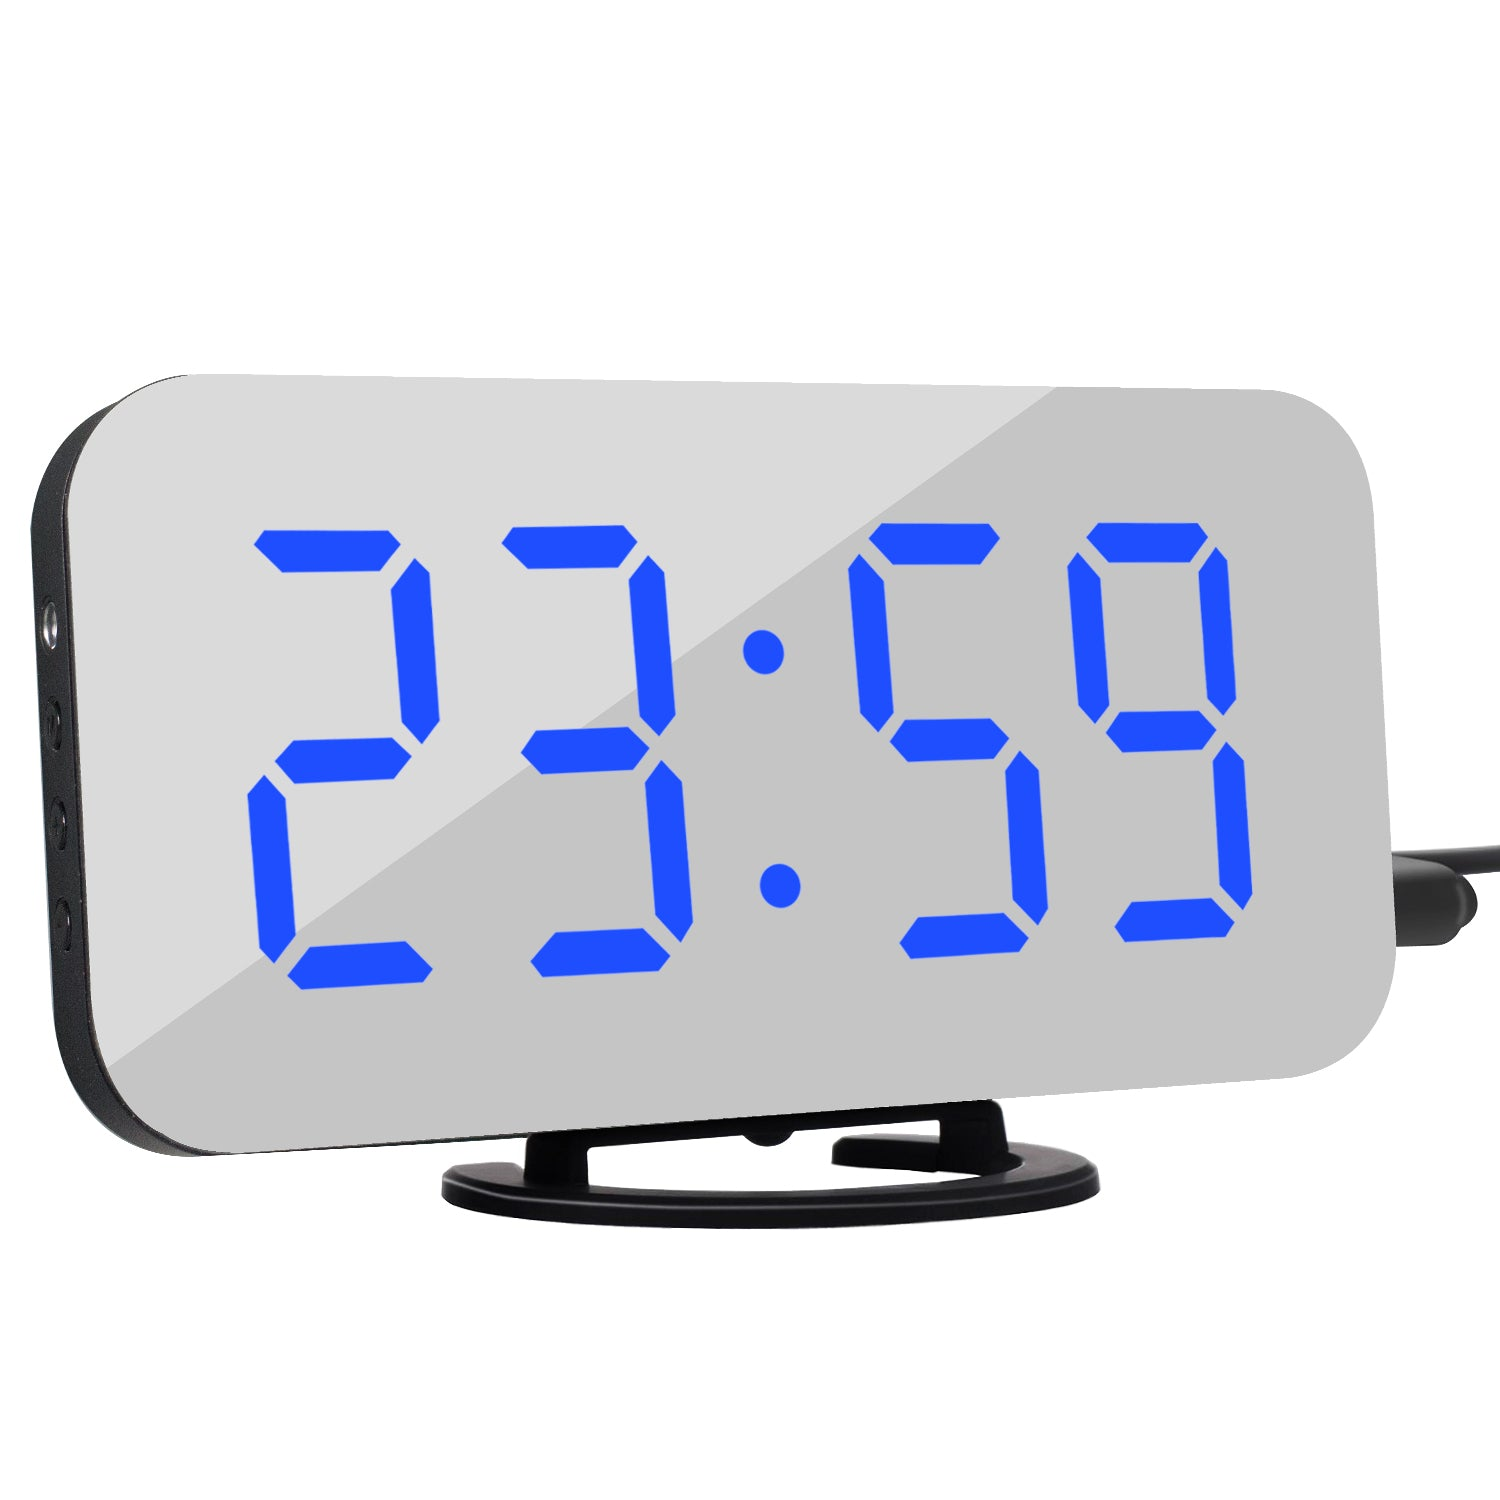 Digital Mirror LED Screen Alarm Clock with Dual USB Charging Port Brightness Sensor for Bedroom Kitchen Hotel Table Desk